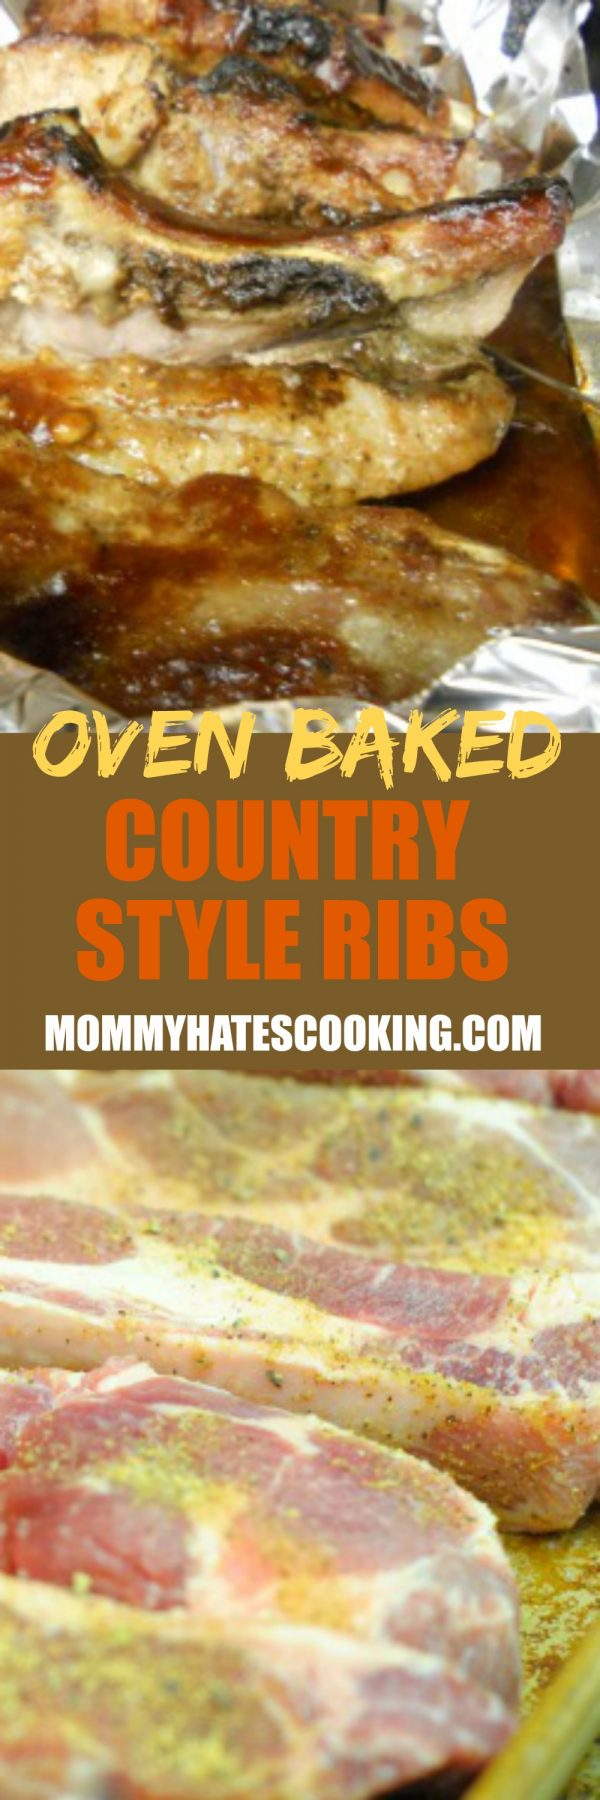 how to make oven baked country style ribs